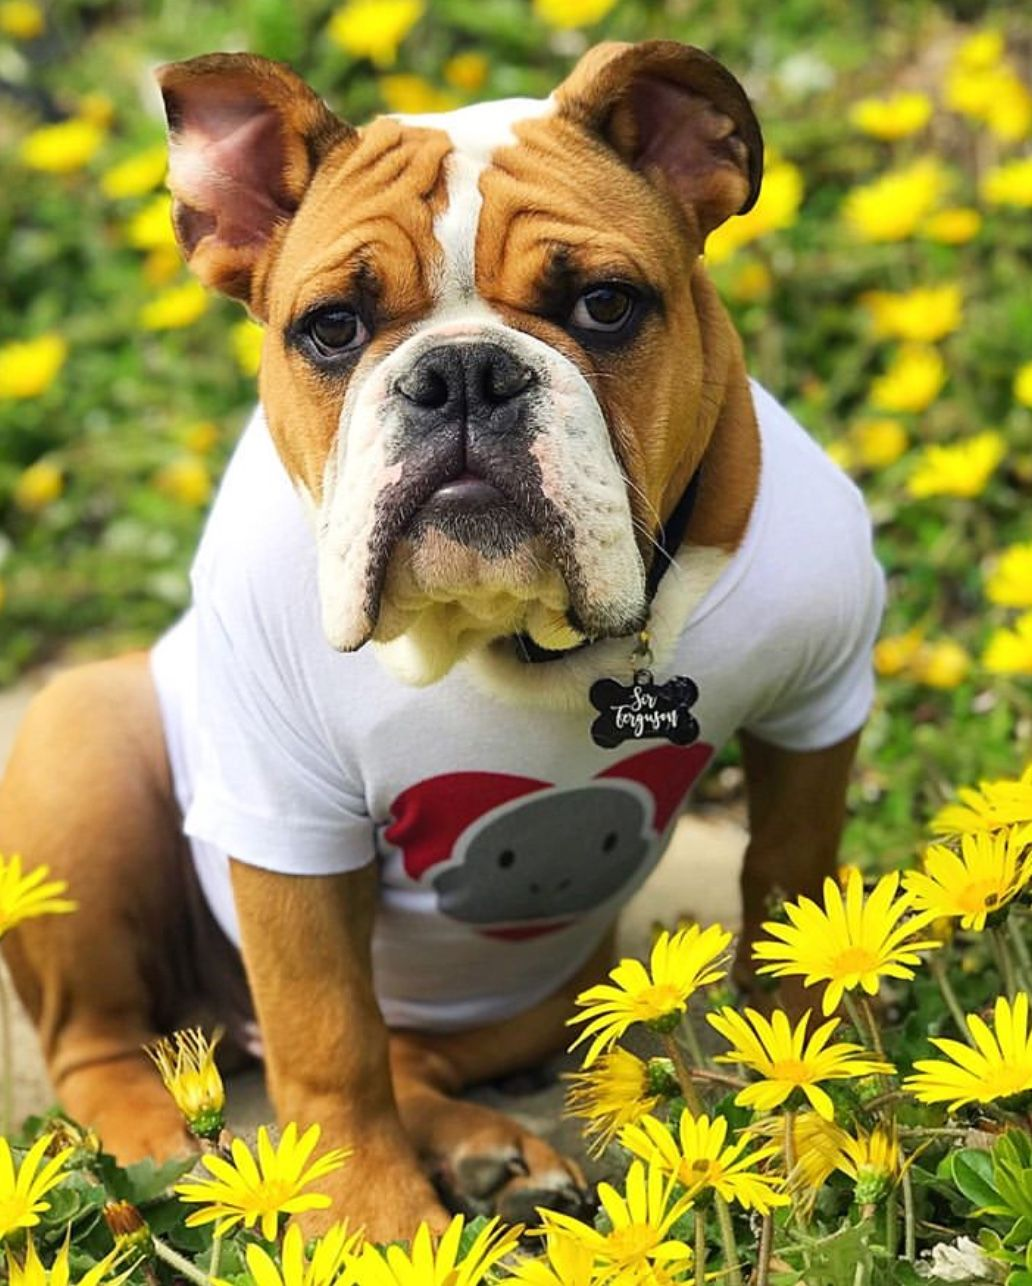 Pin by The Hempr3ss on Baby animals Bulldog breeds, Old